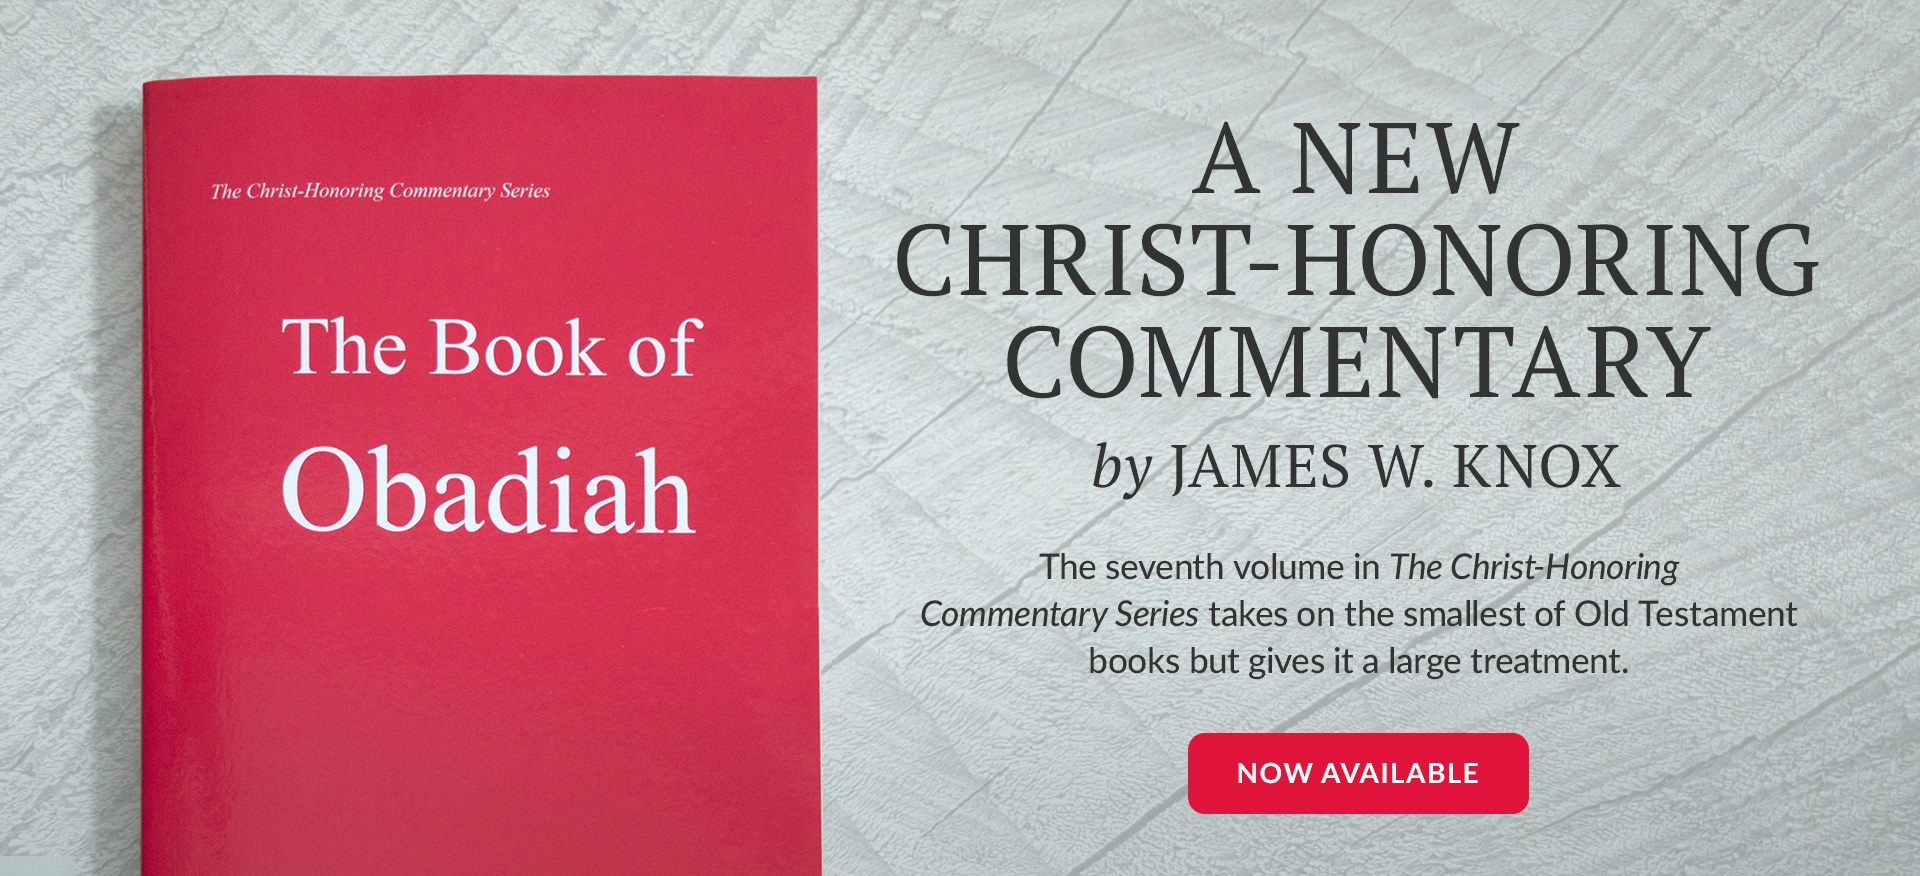 The Book of Obadiah Commentary by James W. Knox Now Available